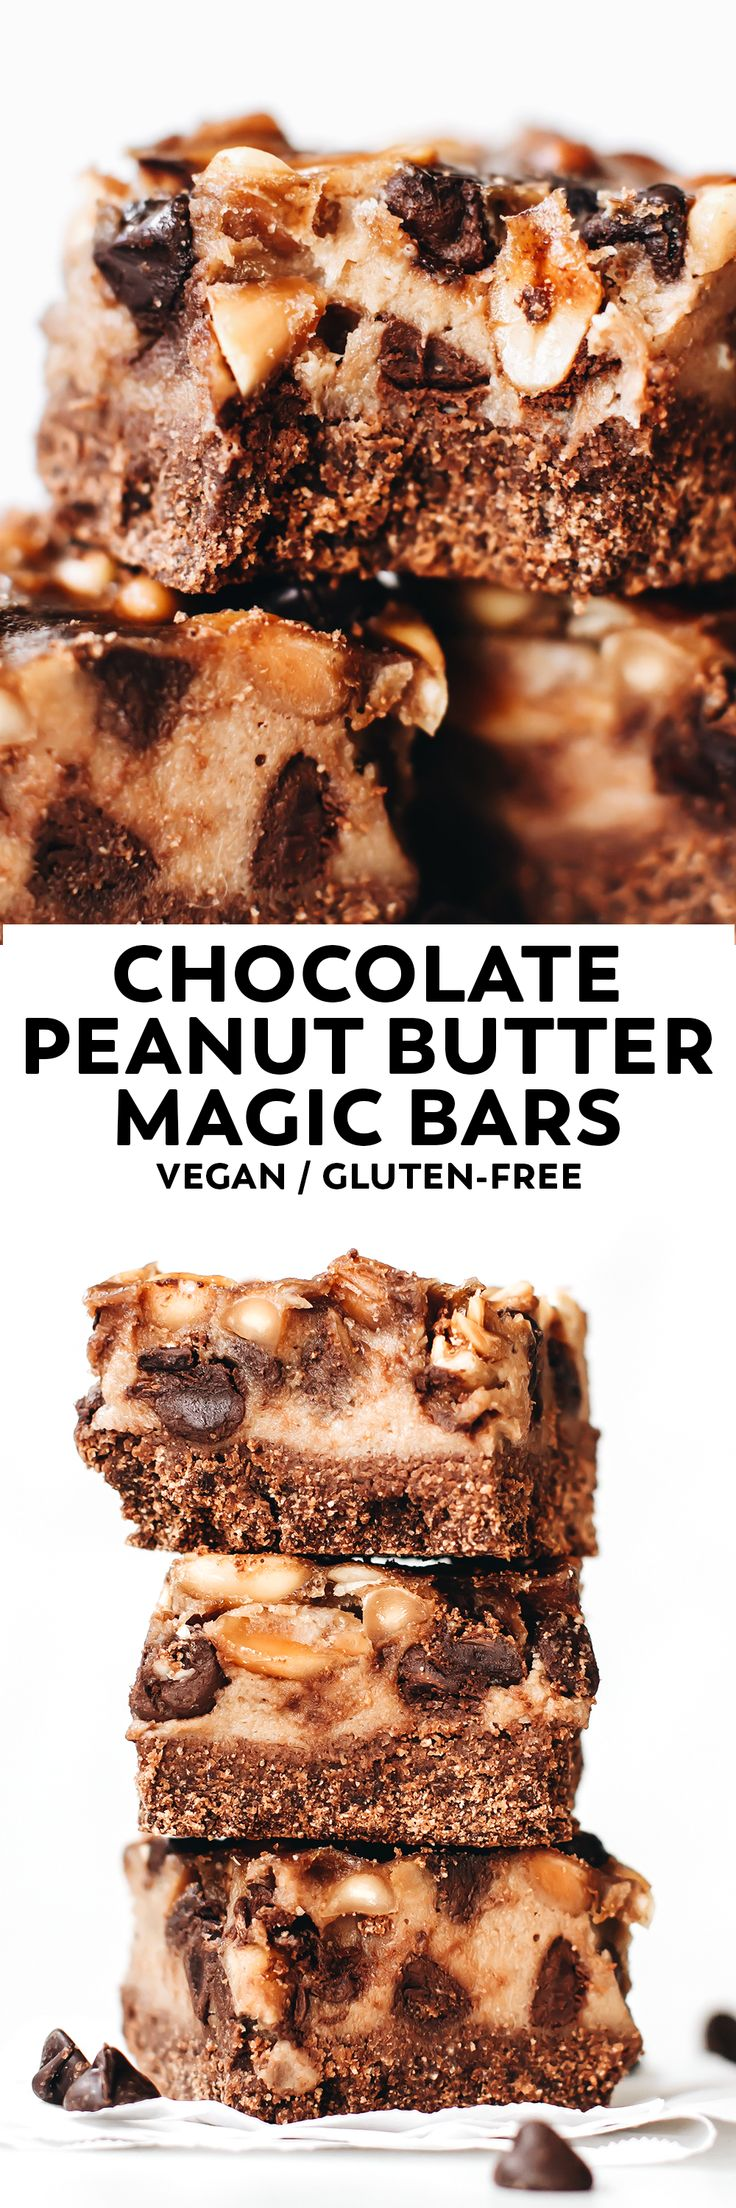 A truly MAGICAL gooey nutty chocolate treat – chocolate cookie crust, peanut butter on top, lots of chocolate chips, and NO sweetened condensed milk! #vegan #glutenfree #grainfree #chocolate #peanutbutter #baking #veganrecipe #dessert